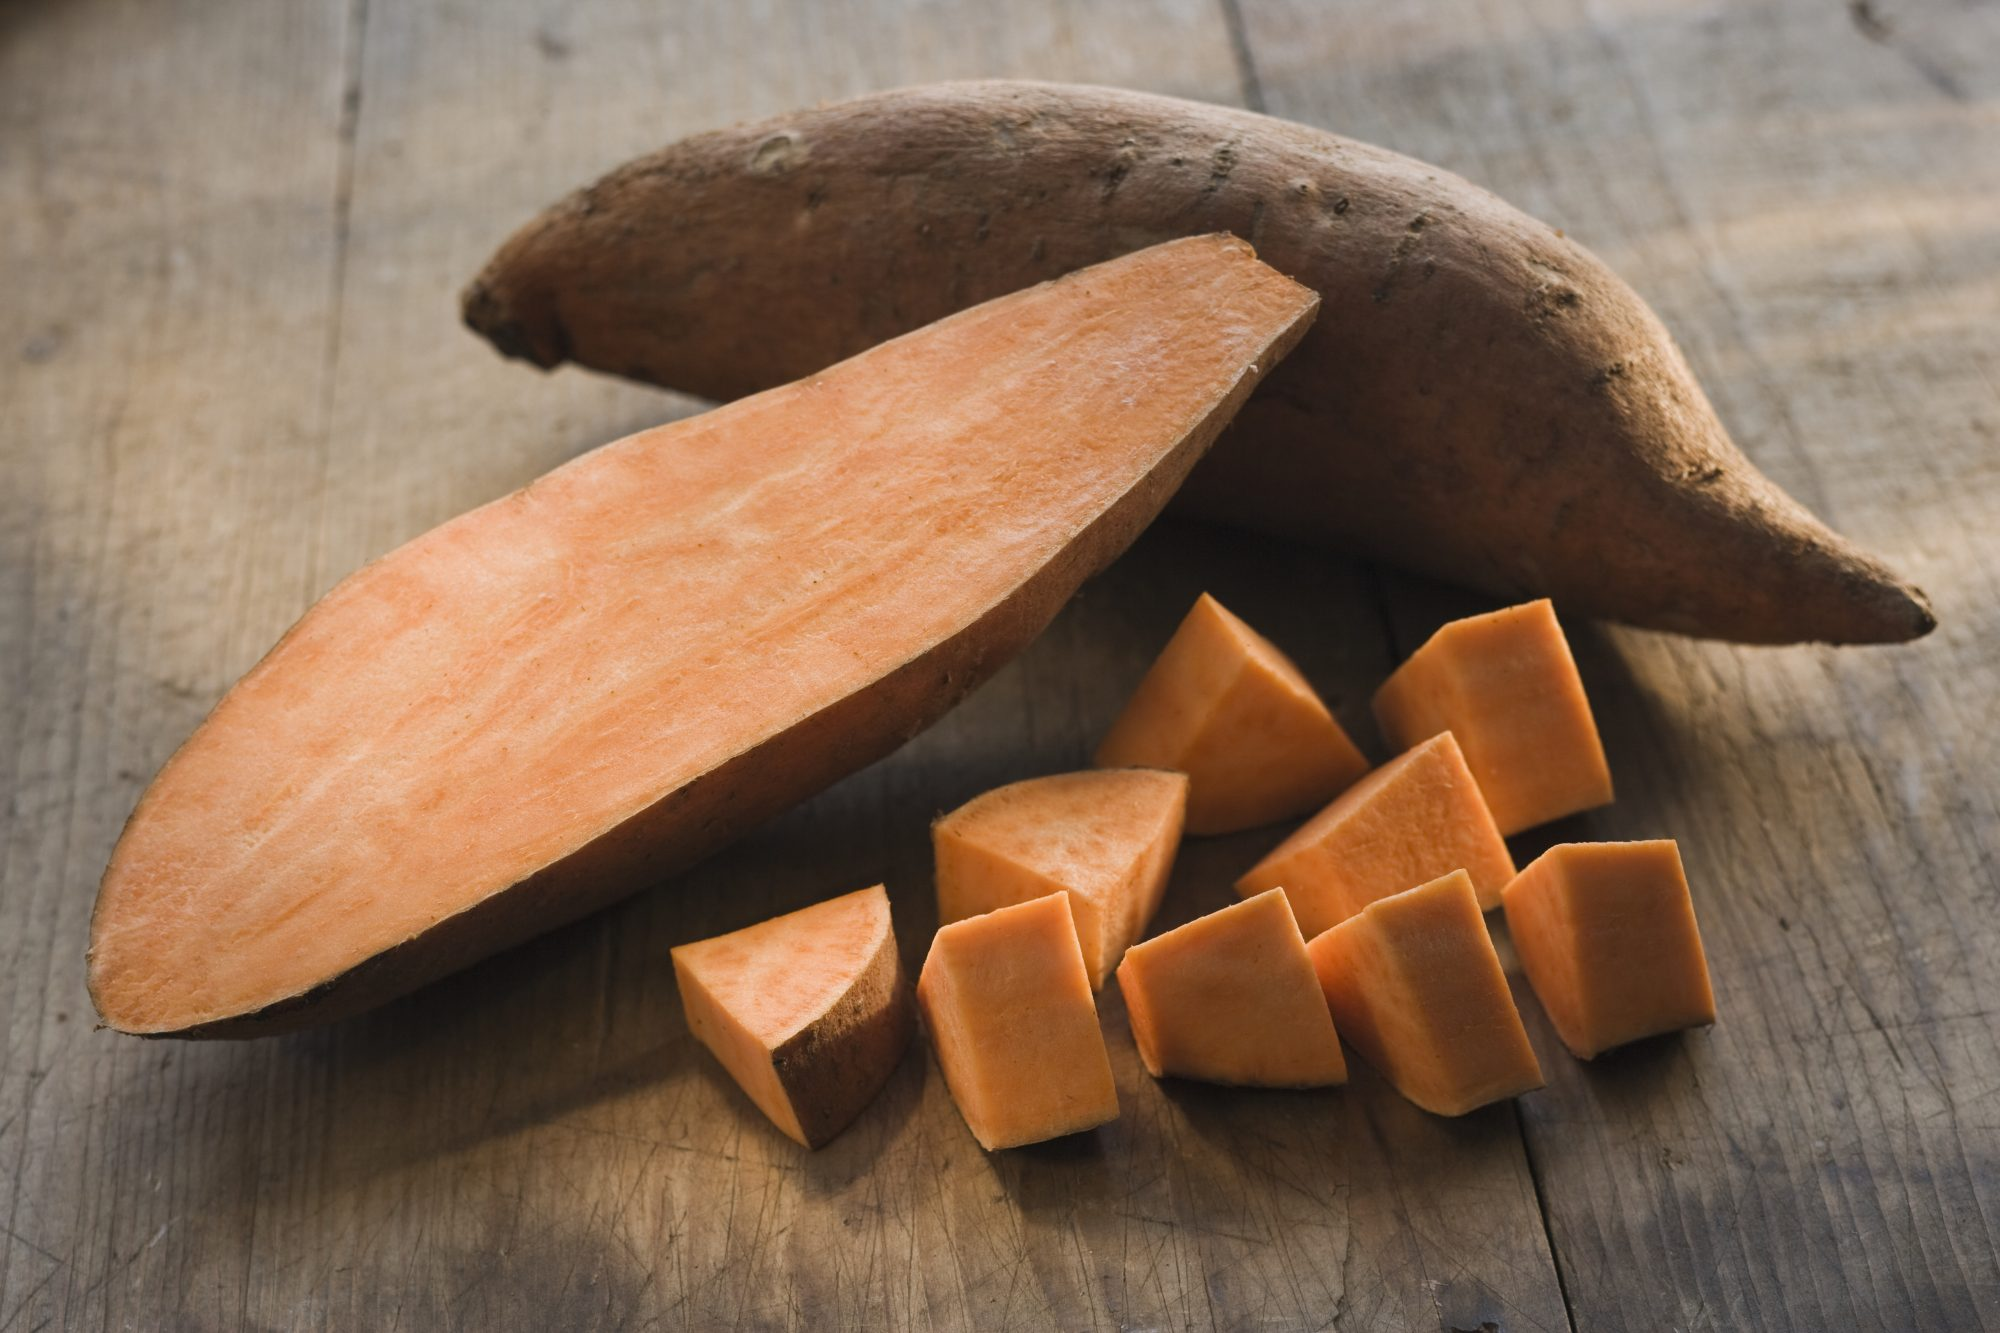 The Healthiest Way to Cook a Sweet Potato Isn't Baking It